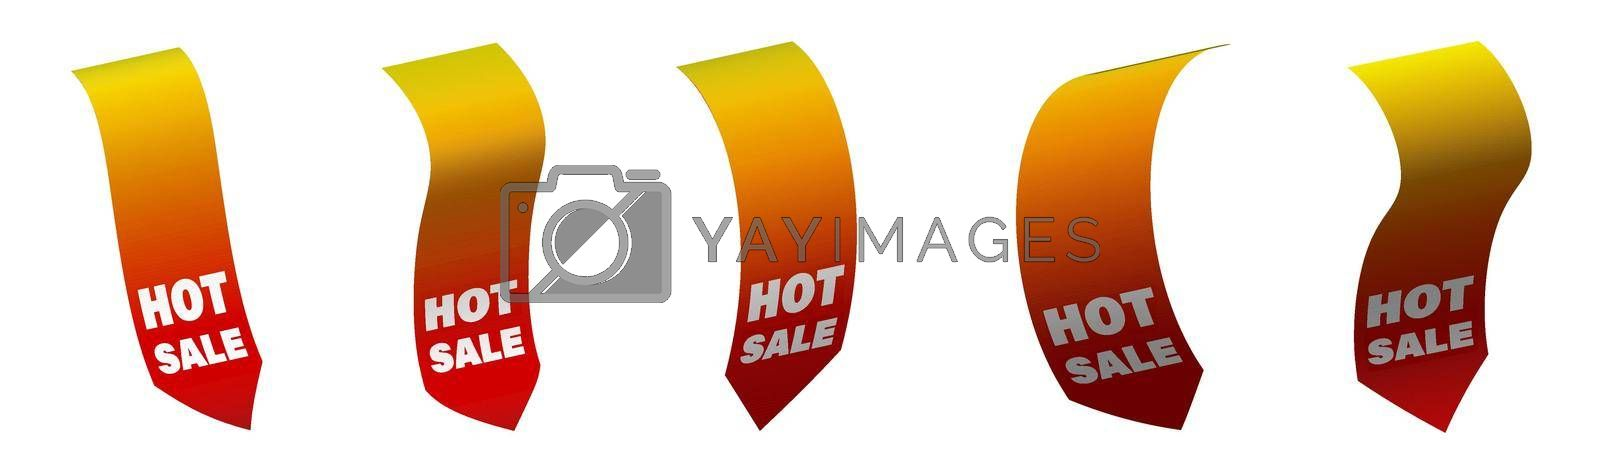 Set of summer price tags for the sale of hot fiery color. Ribbon sale banners isolated on white background. New collection of offers in vector